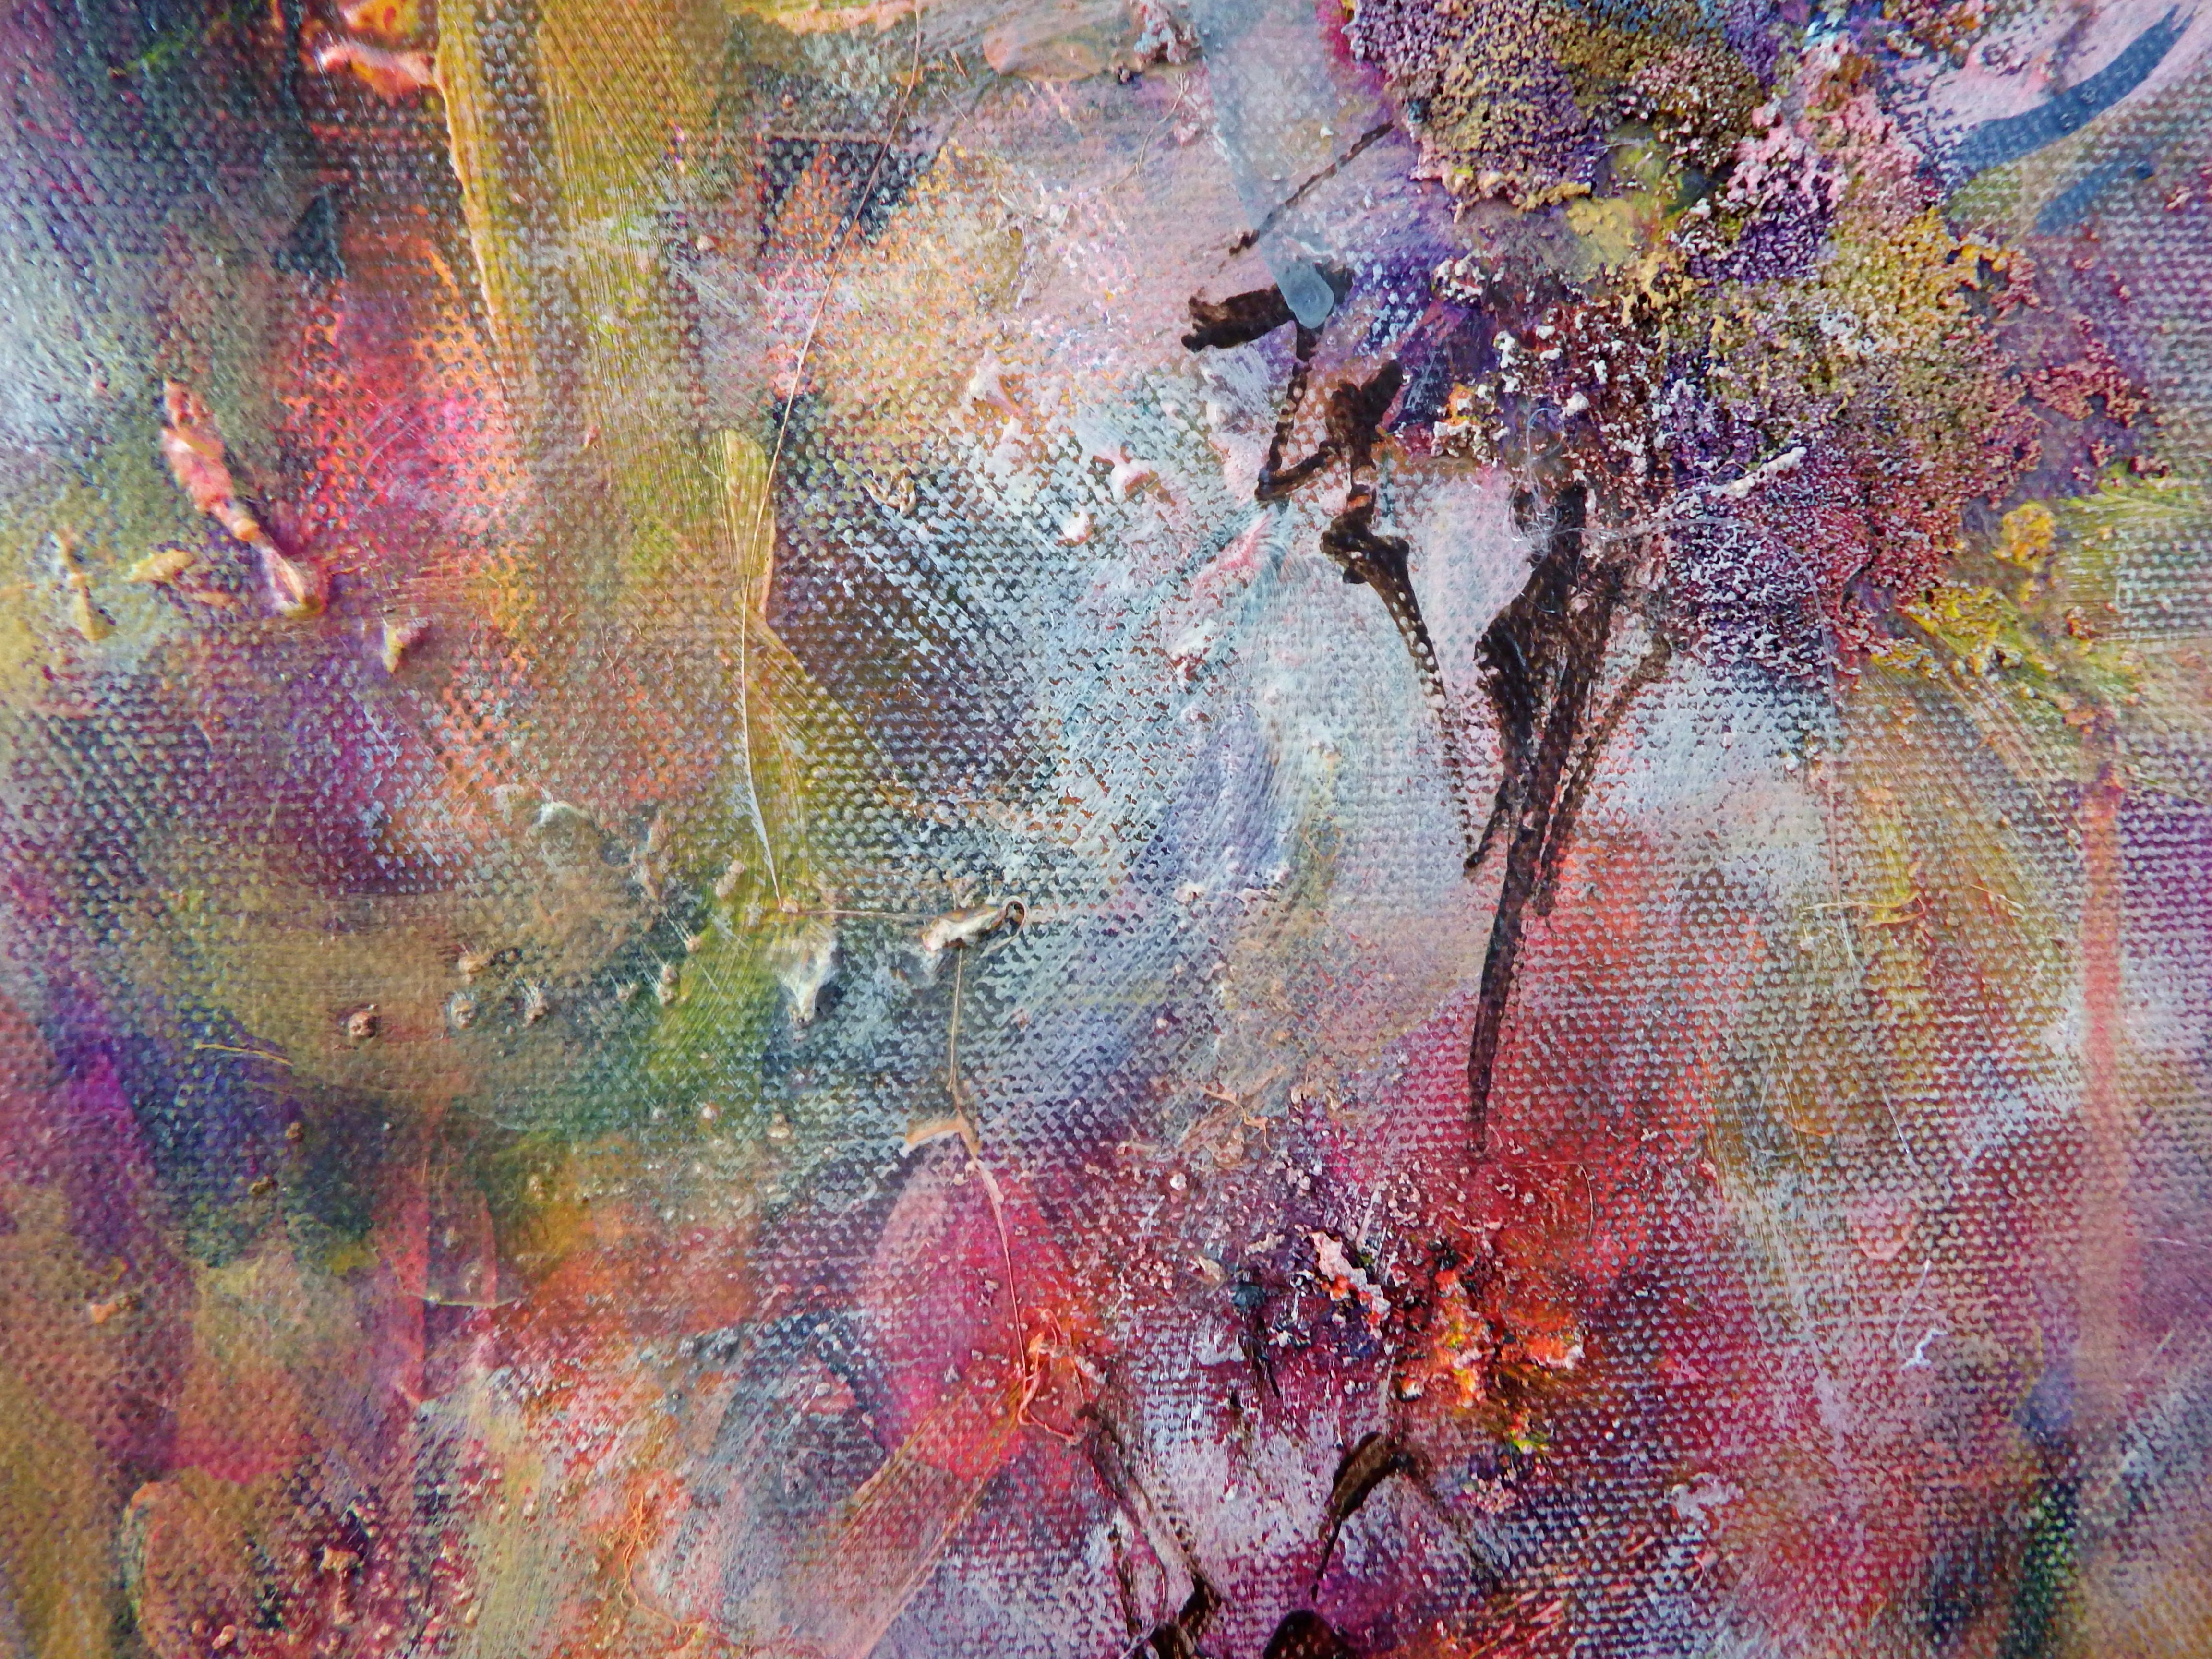 Between the Lilies, Mixed Media on Canvas, by Sabrina Brett 6